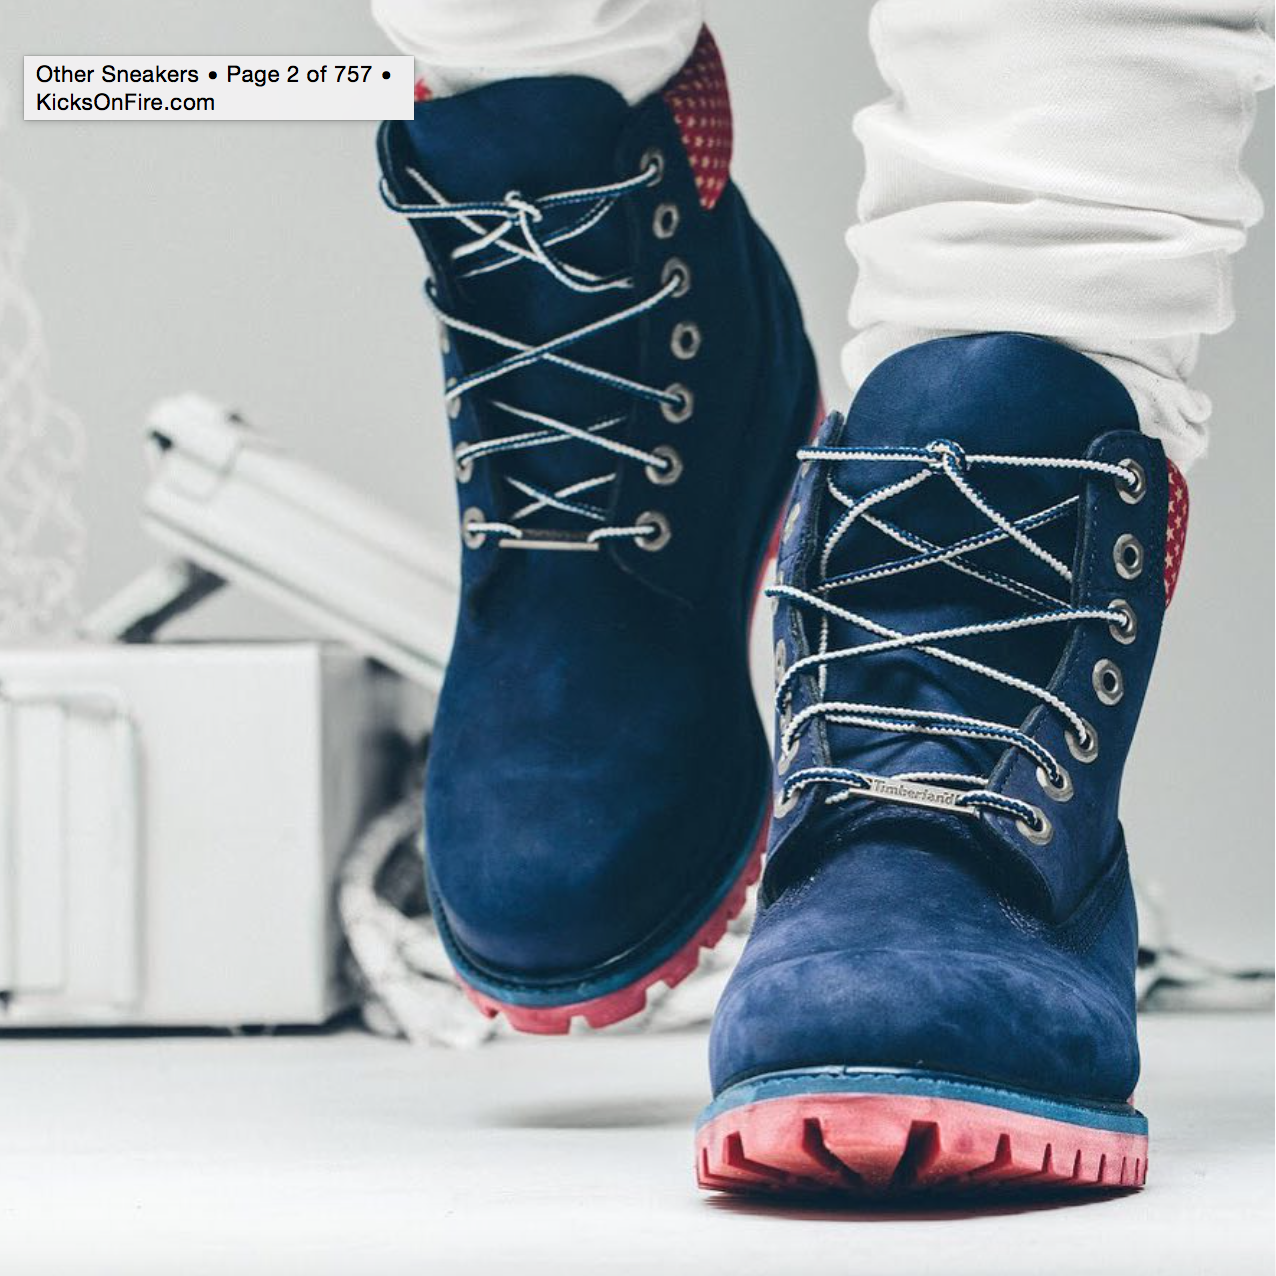 "d45409f0f86b Finally A Full Look At The Villa x Timberland 6-Inch Boot ""Old Glory"" —  Sneaker Shouts"